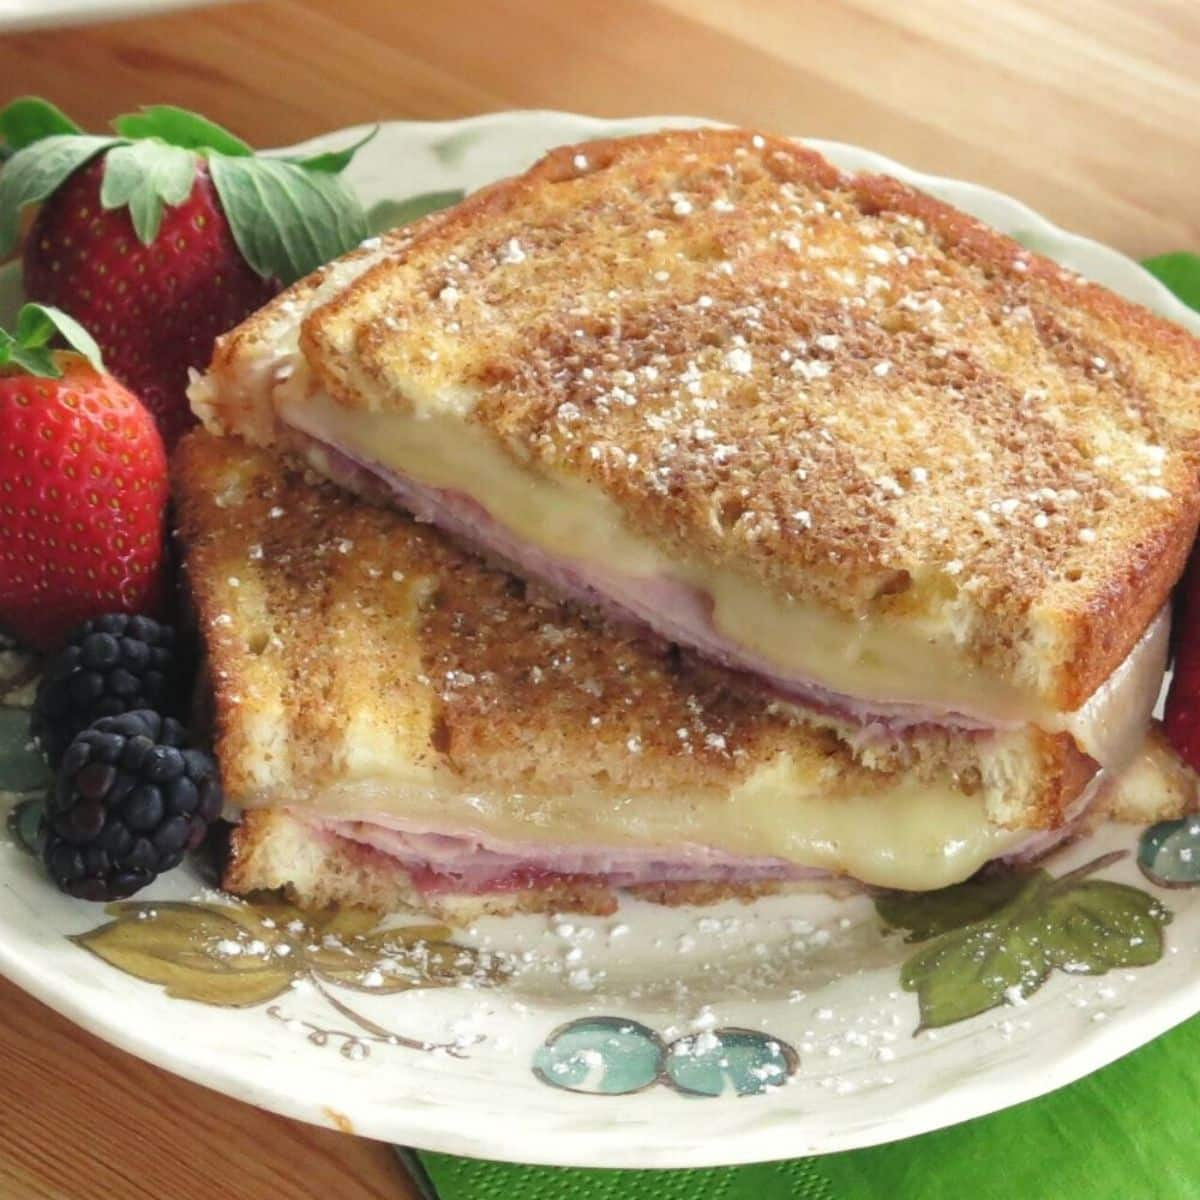 Monte Cristo Grilled Cheese on a plate.